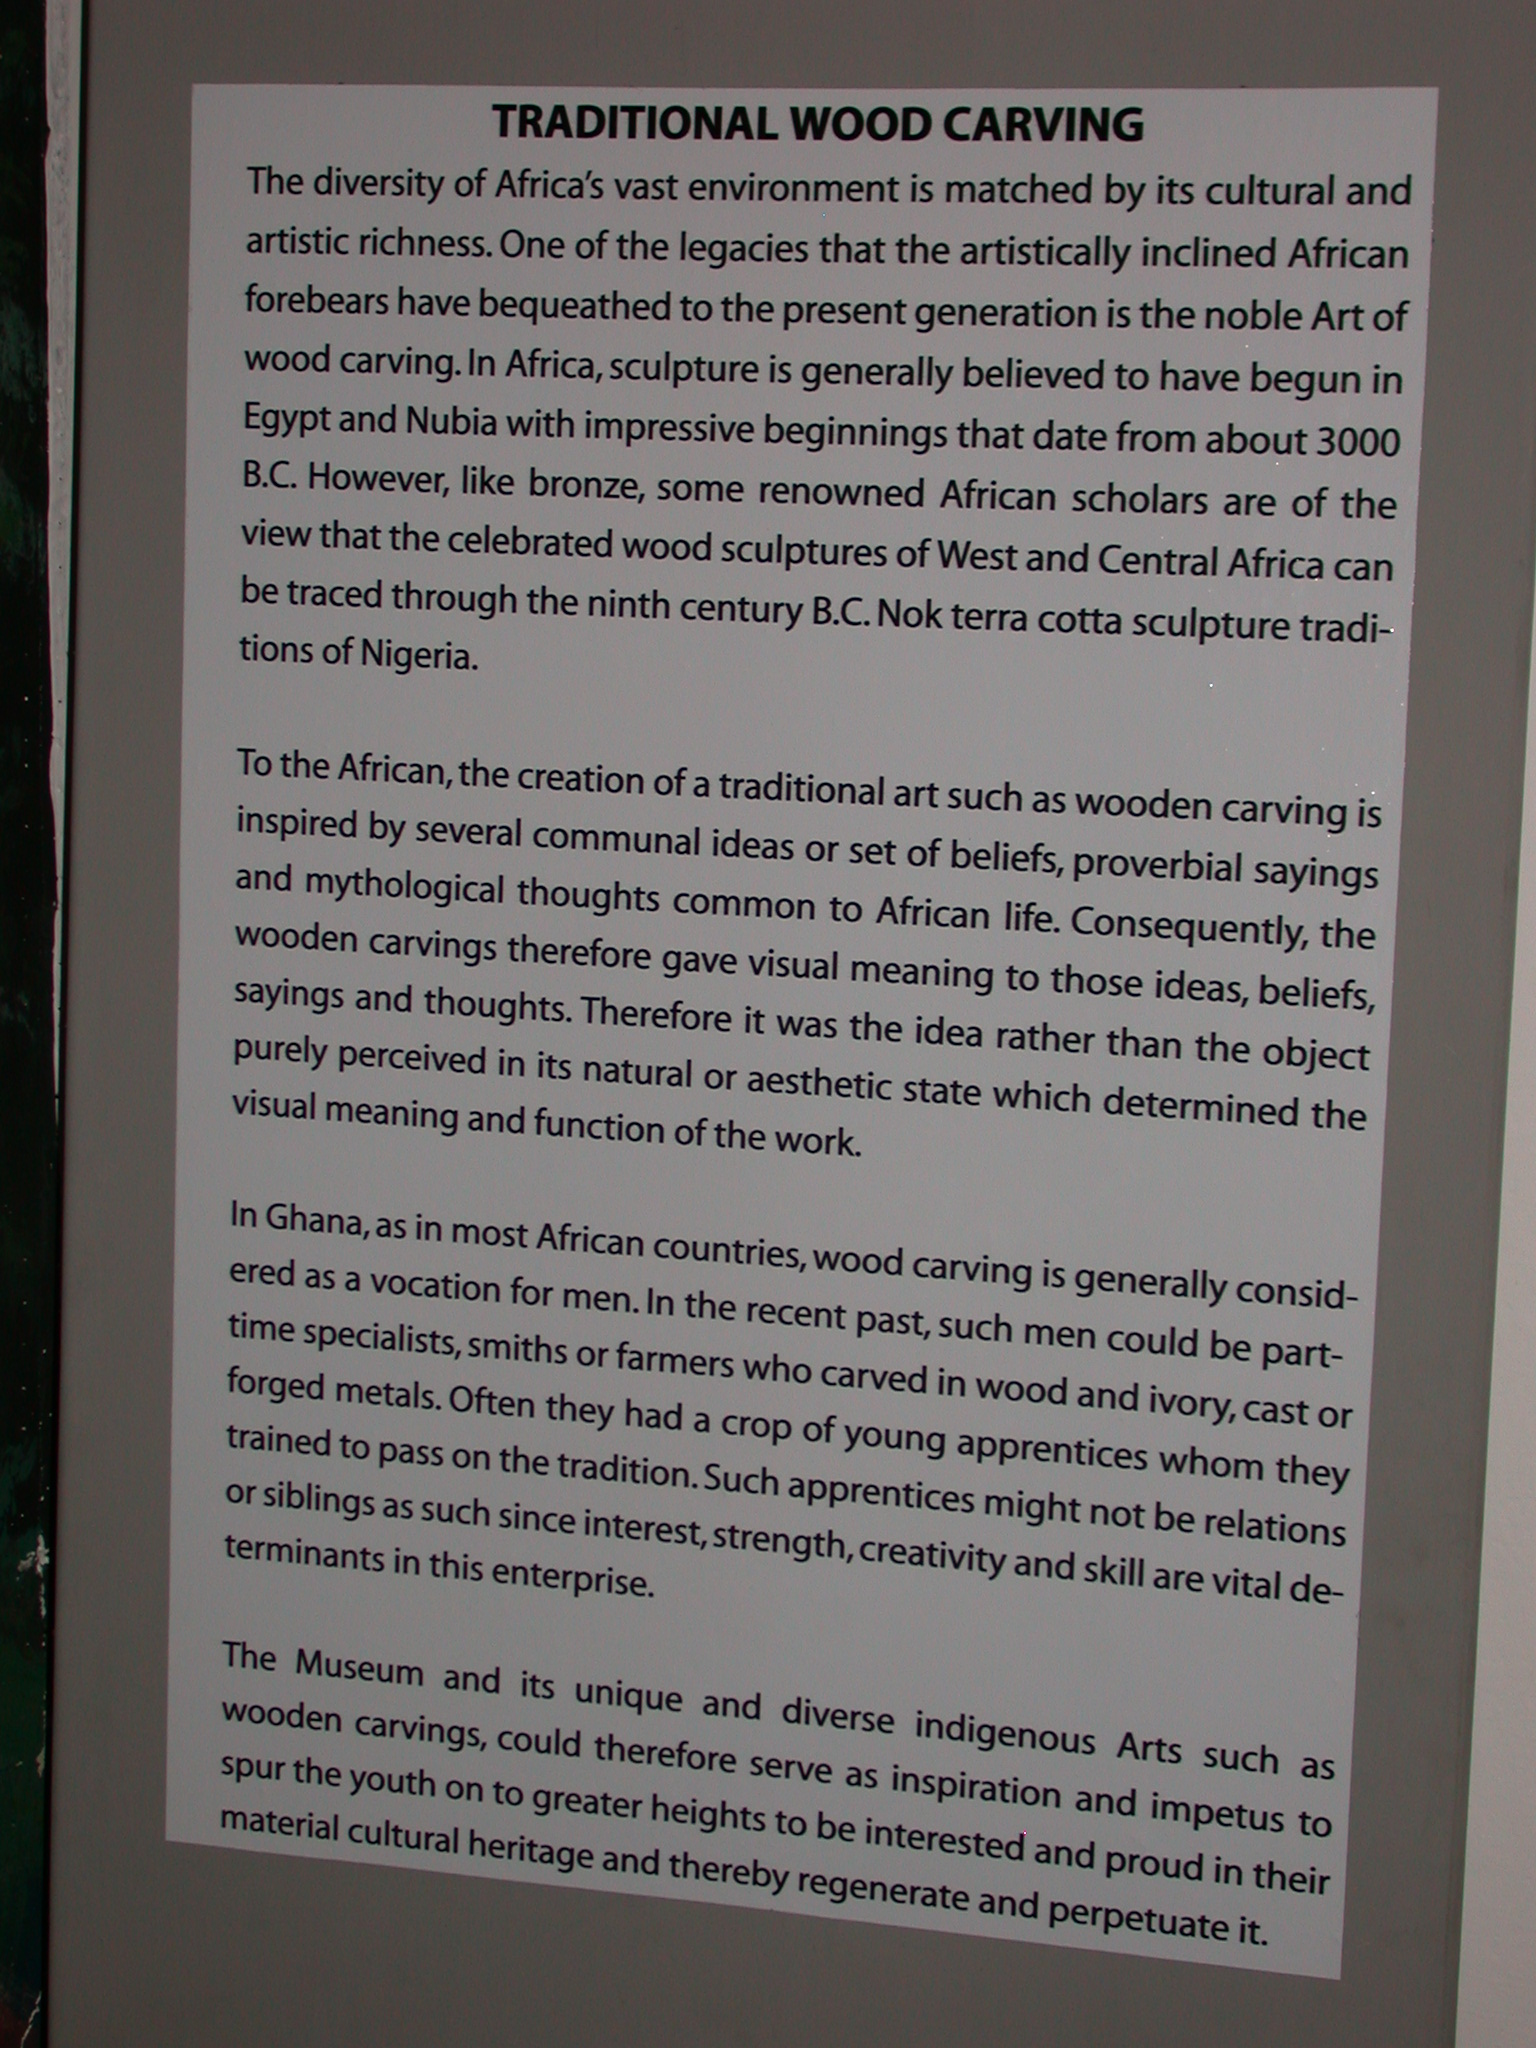 Description of Traditional Wood Carving, National Museum, Accra, Ghana